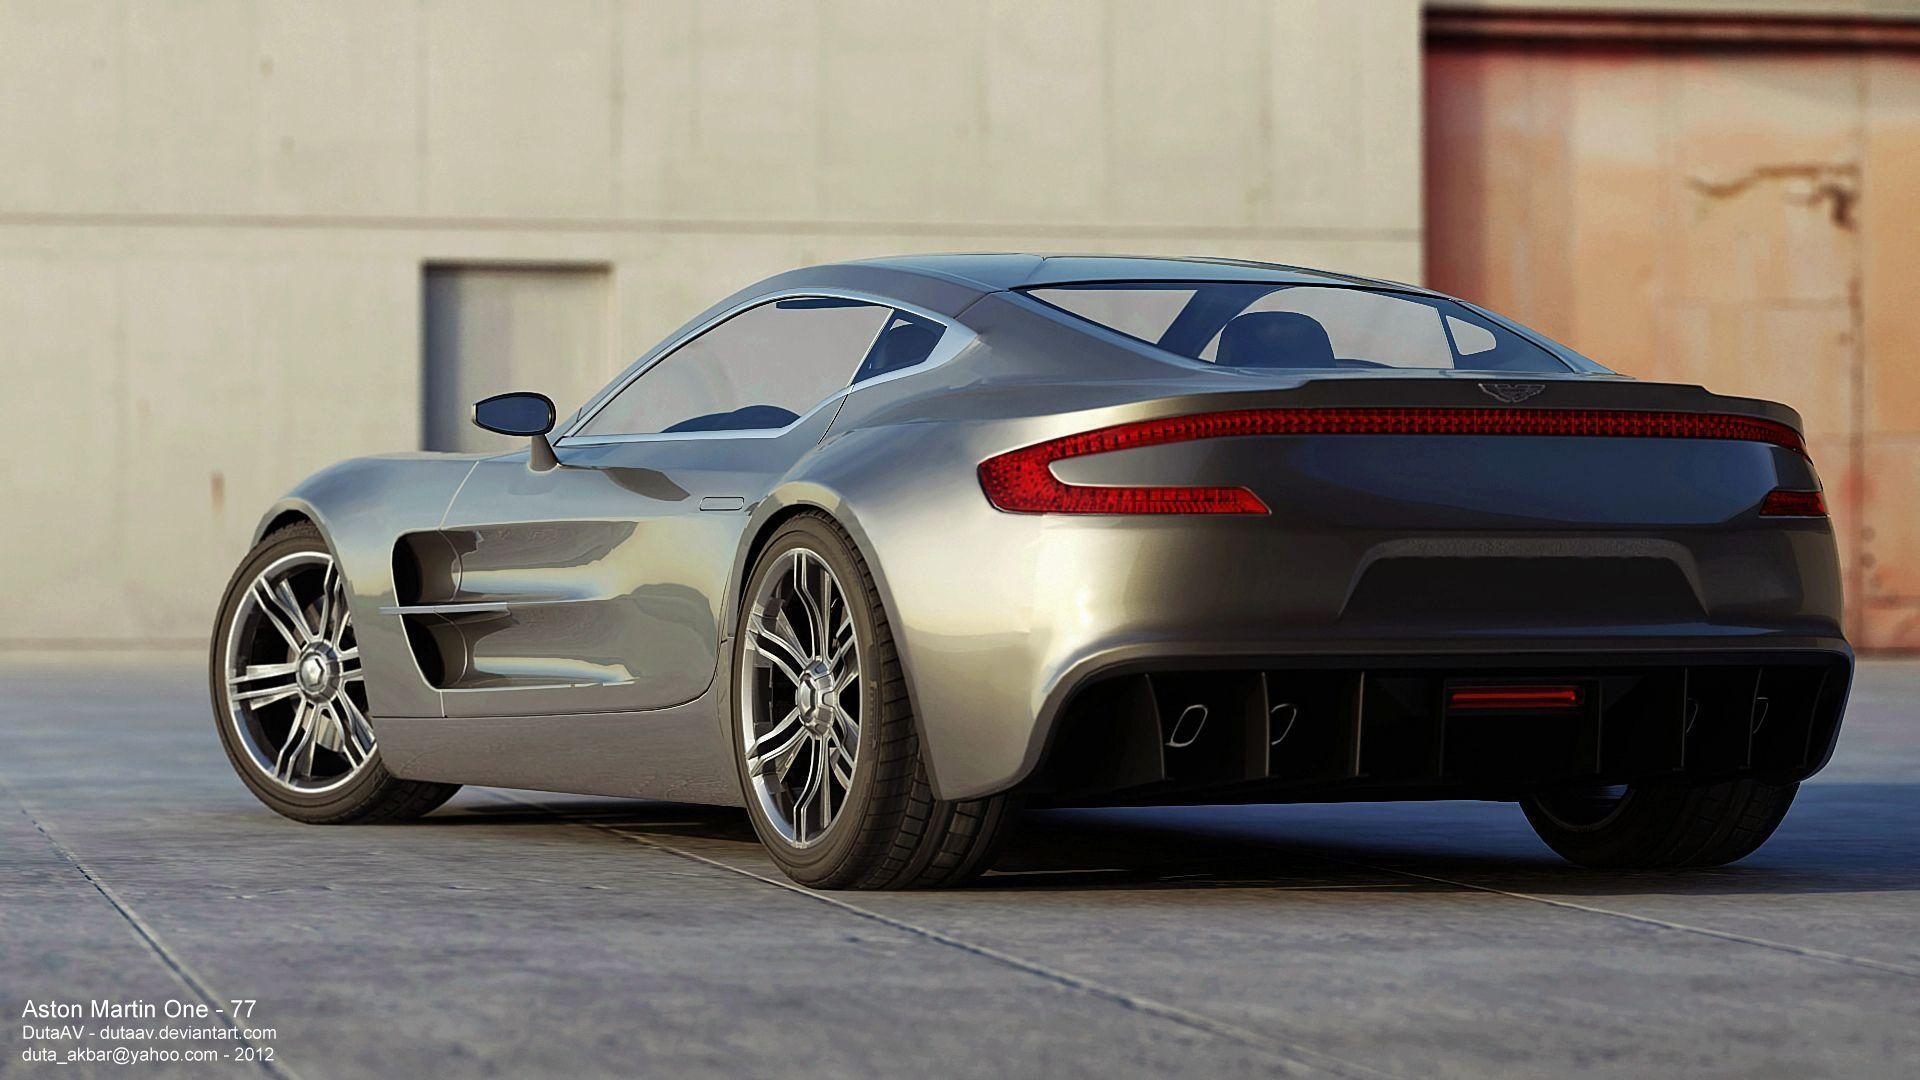 Hd Wallpapers Of Aston Martin One 77